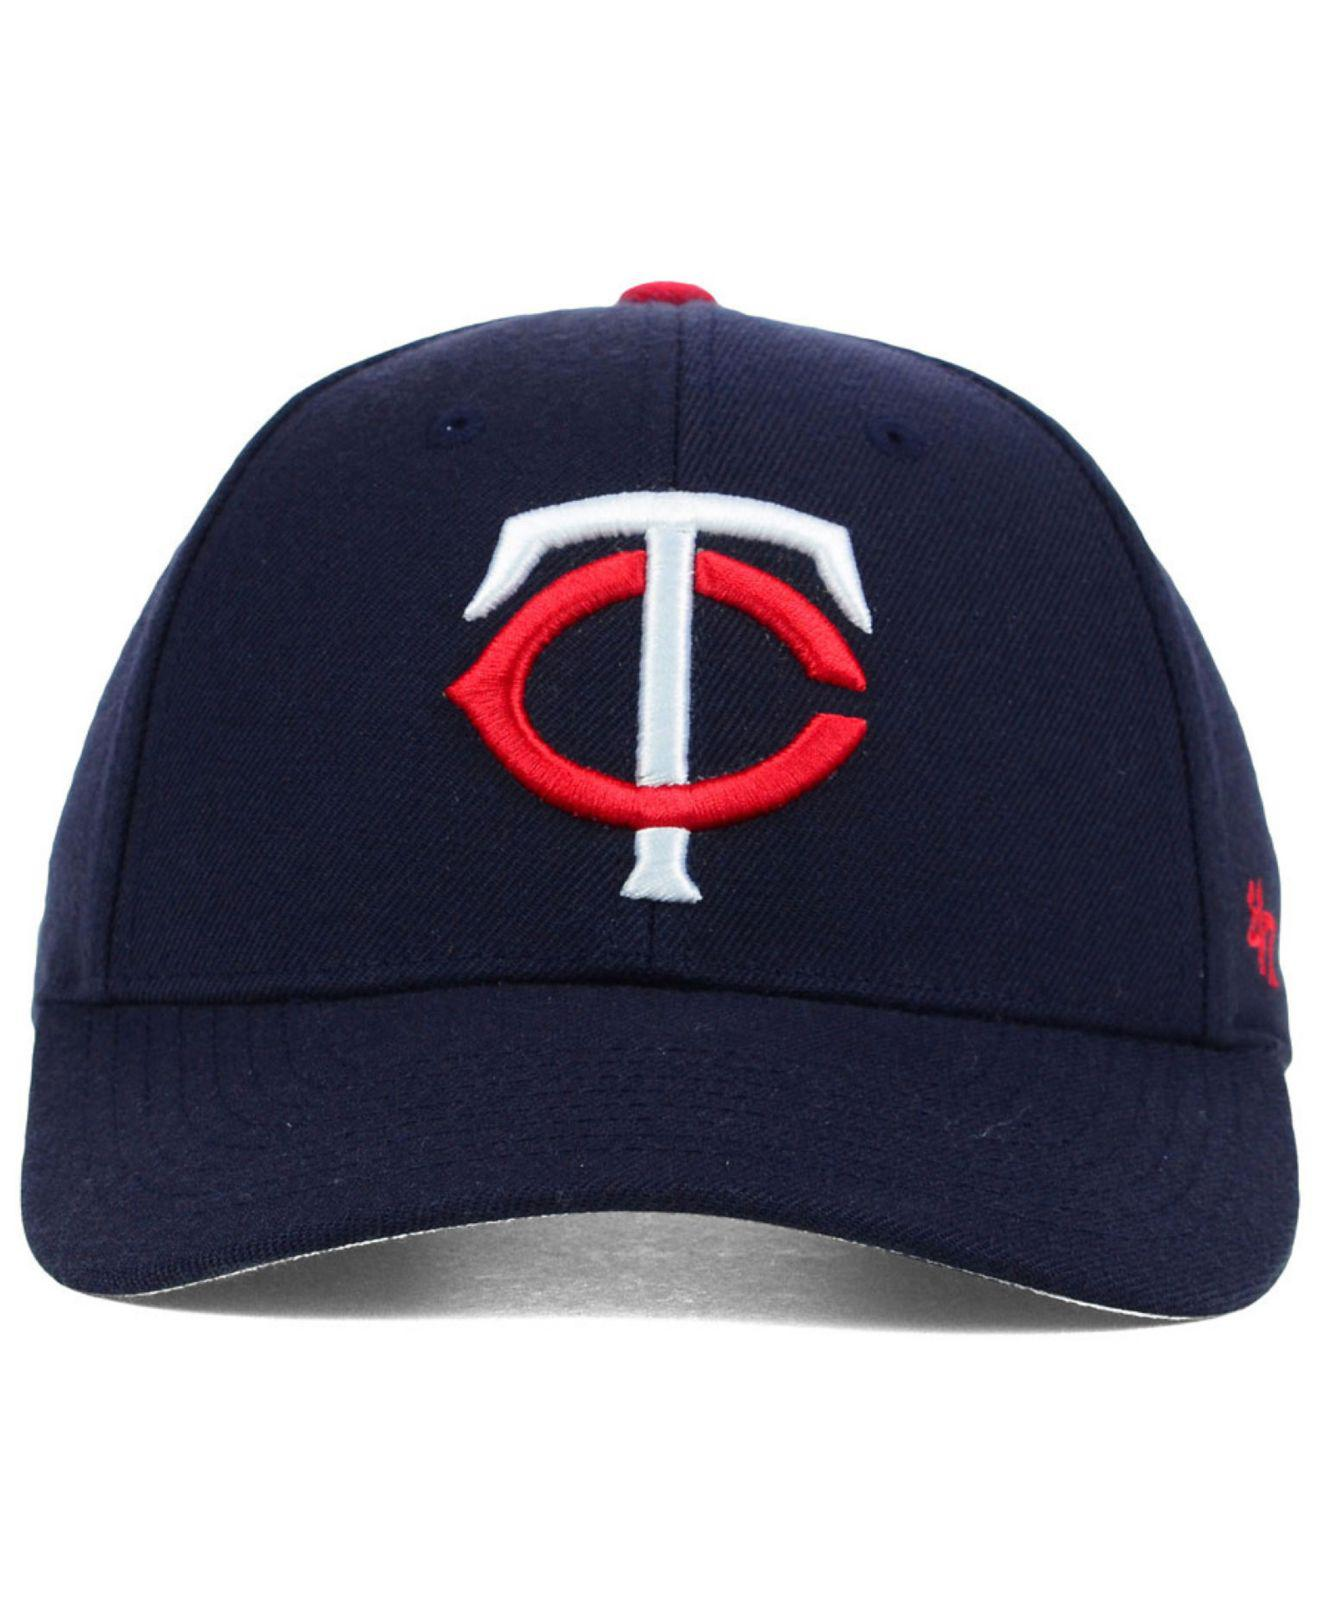 online store 3857a 603fe ... best lyst 47 brand minnesota twins mvp curved cap in blue for men f1cb2  a8d70